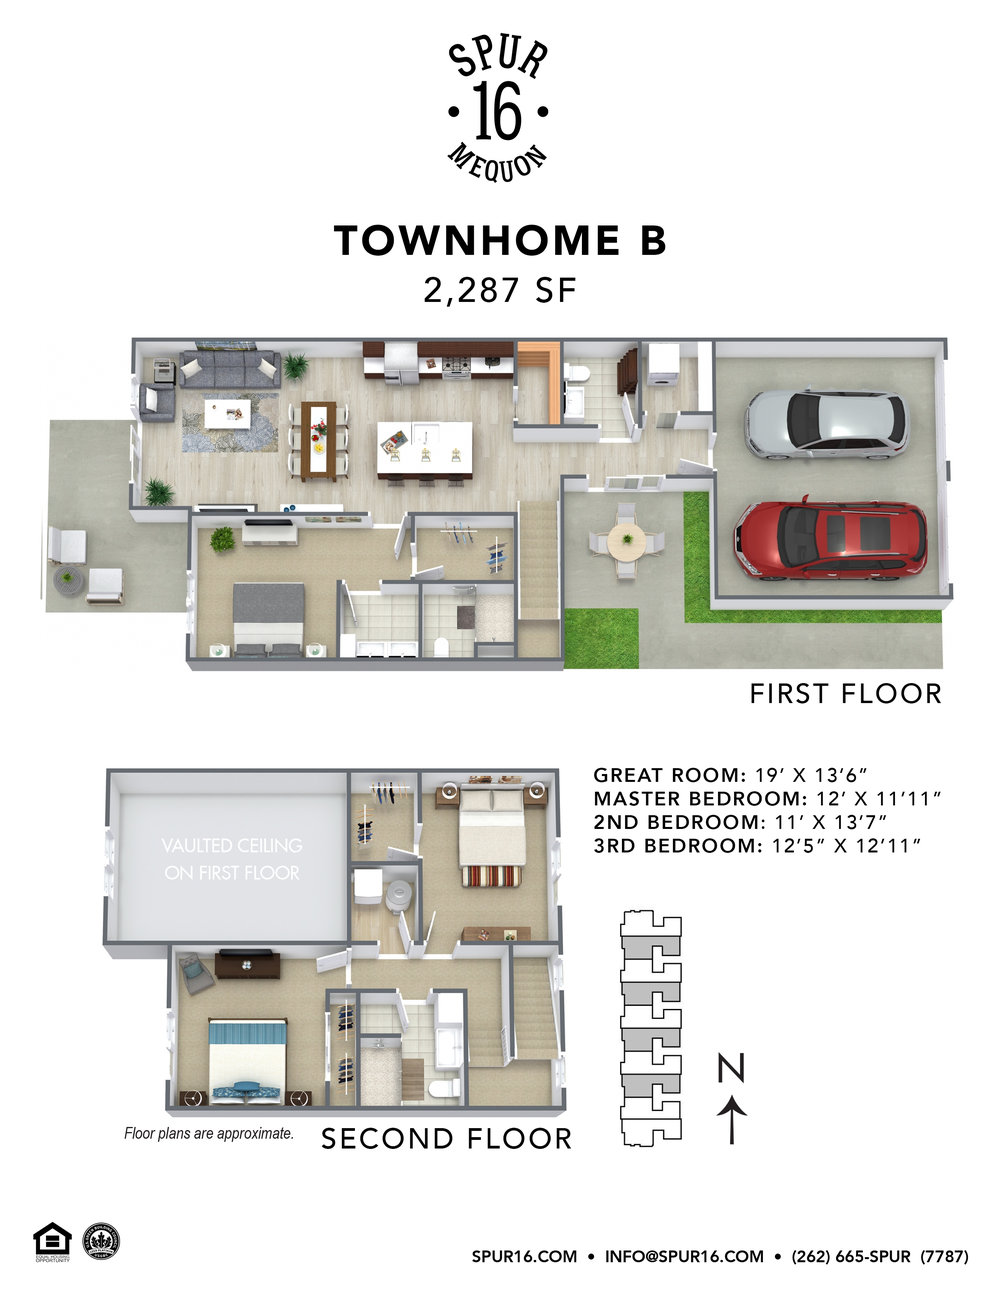 3D Floor Plan - Townhome B.jpg